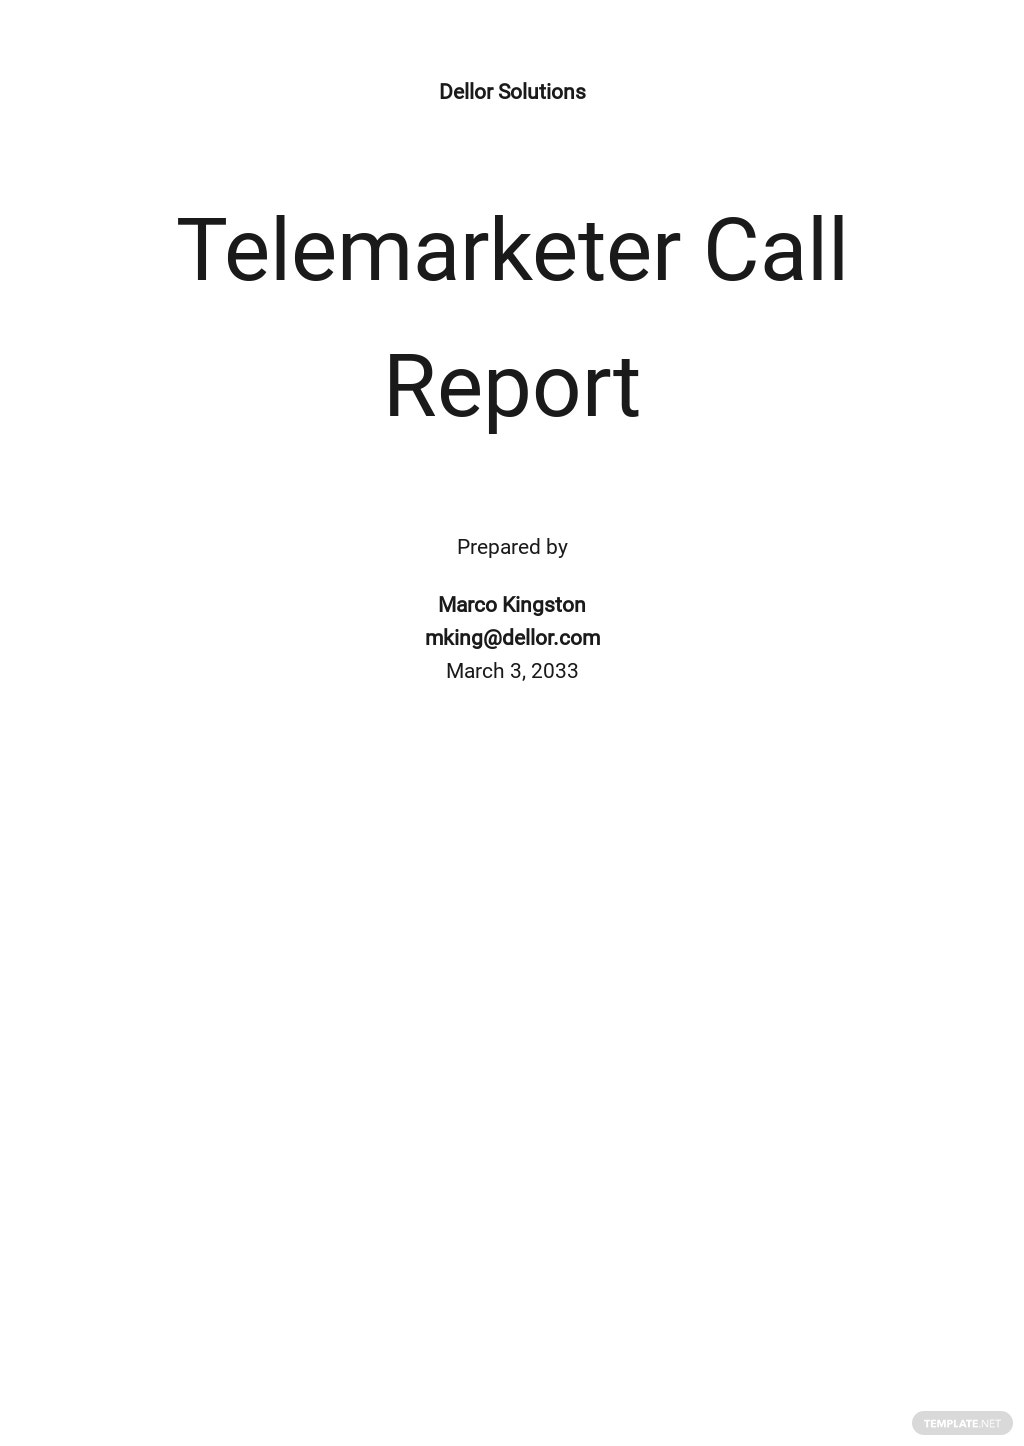 Telemarketer Call Report Template